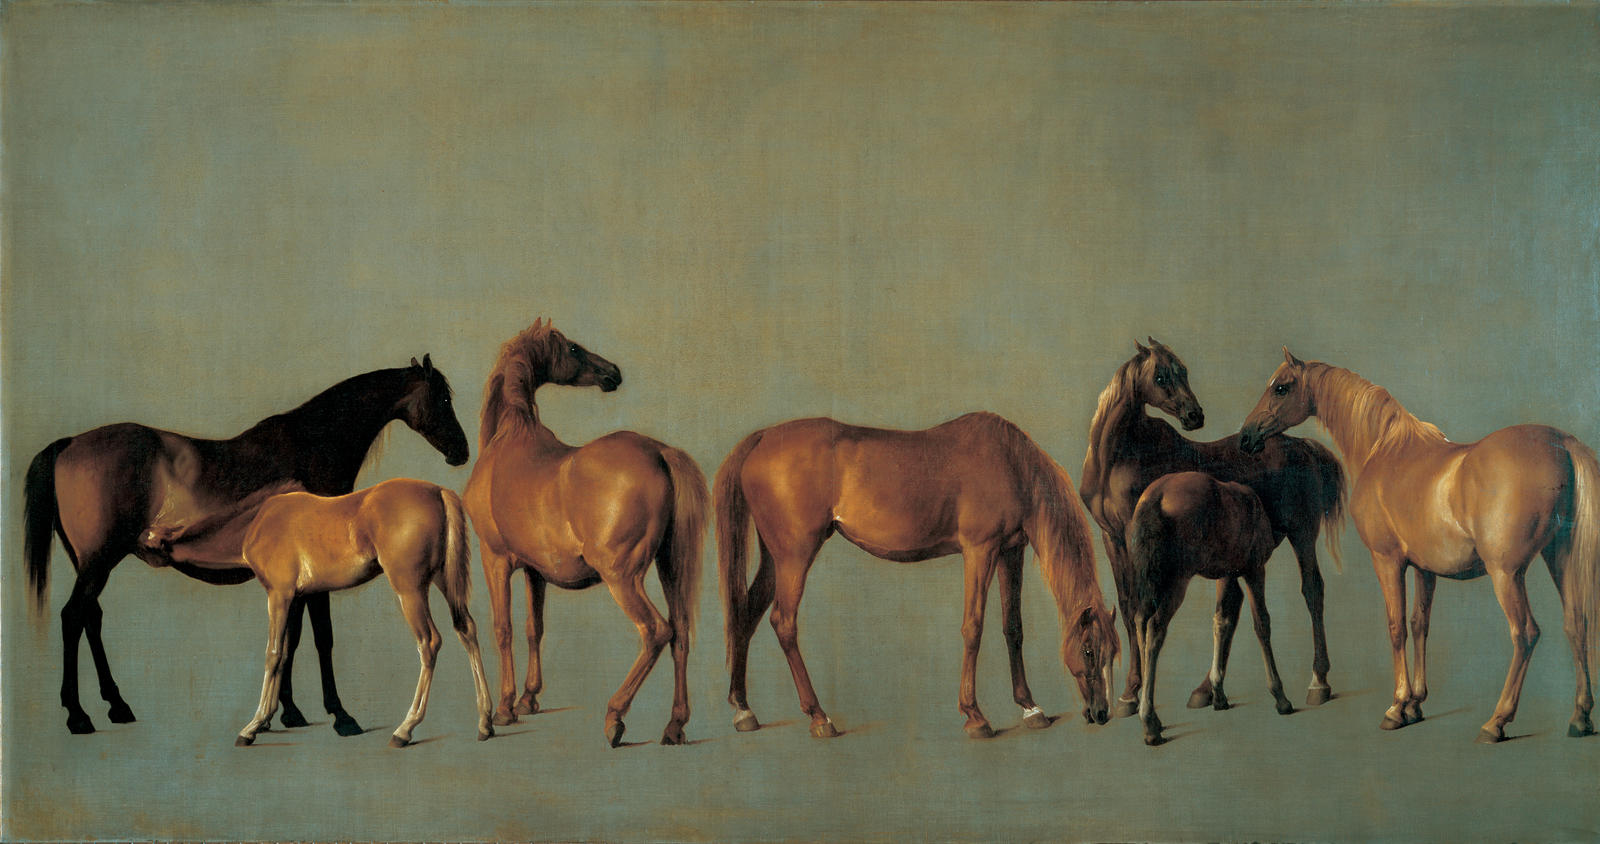 George Stubbs (1724–1806), Mares and Foals, 1762, oil on canvas, Reproduced by permission of the Trustees of the Rt. Hon. Olive, Countess Fitzwilliam's Chattels Settelement, and Lady Juliet Tadgell, Photograph: John Webb